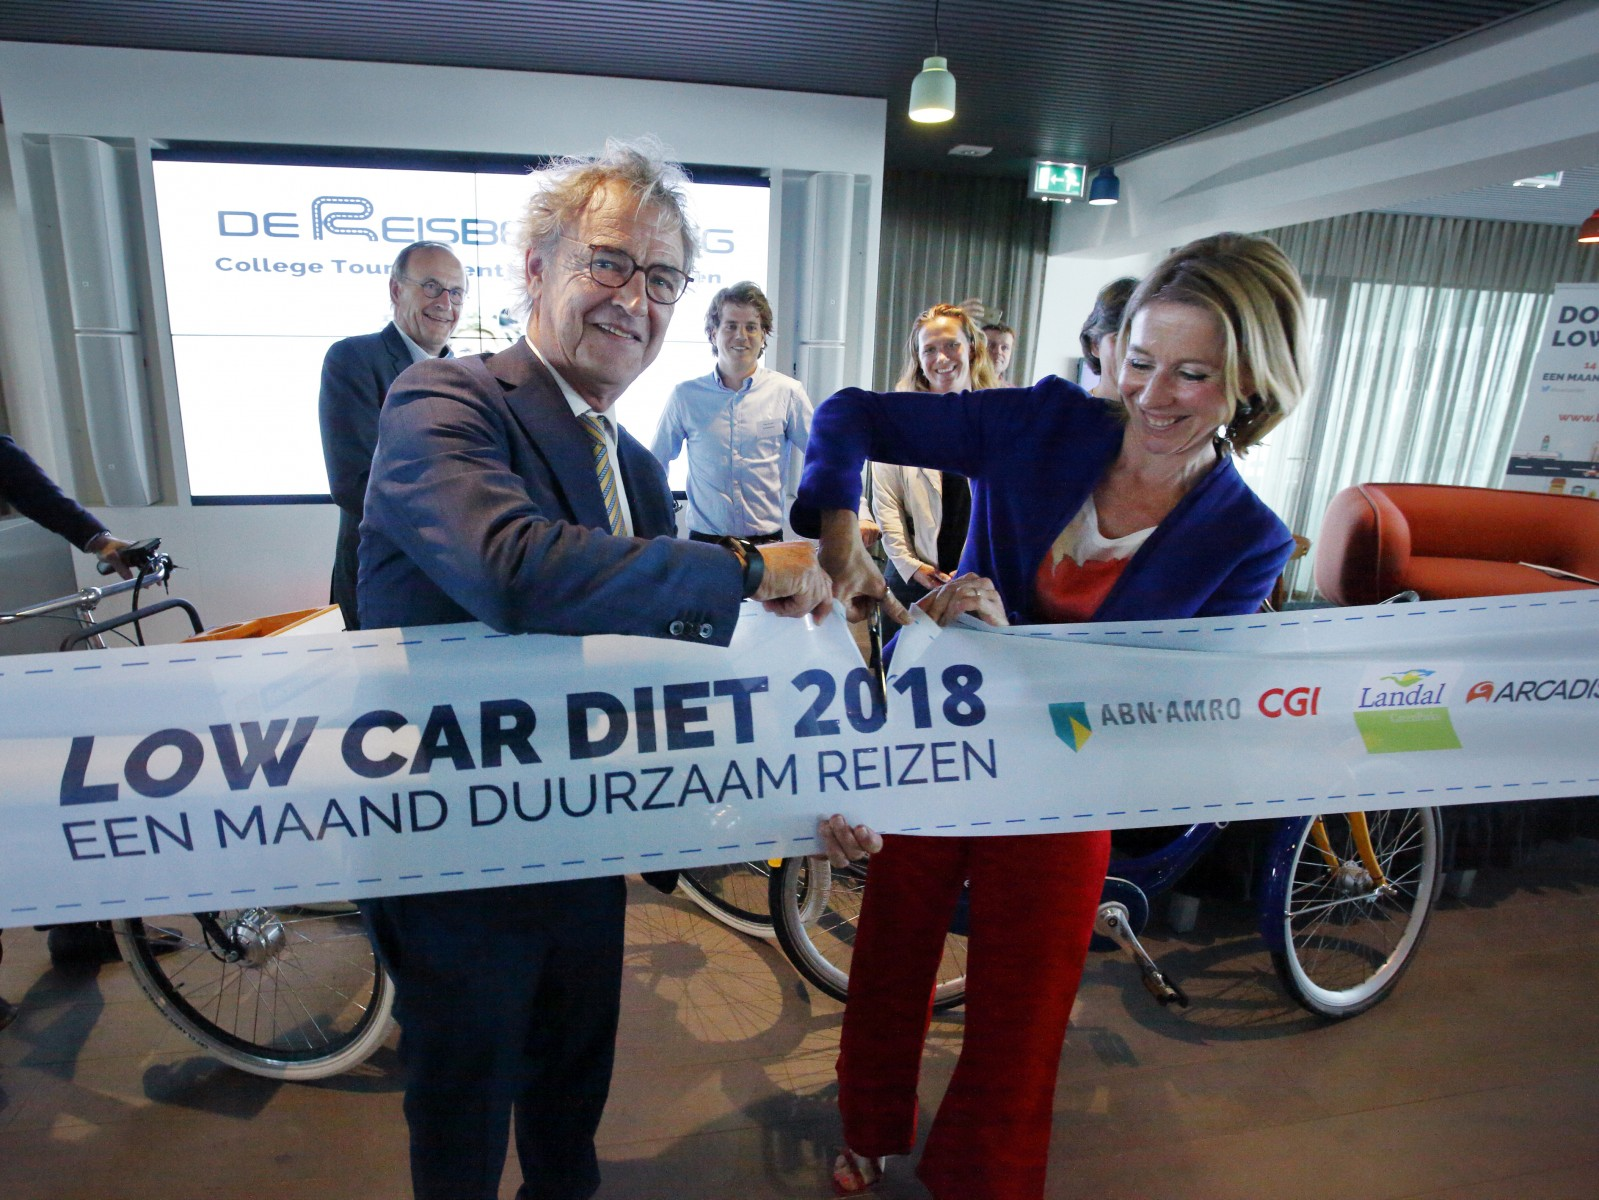 Low Car Diet 2018